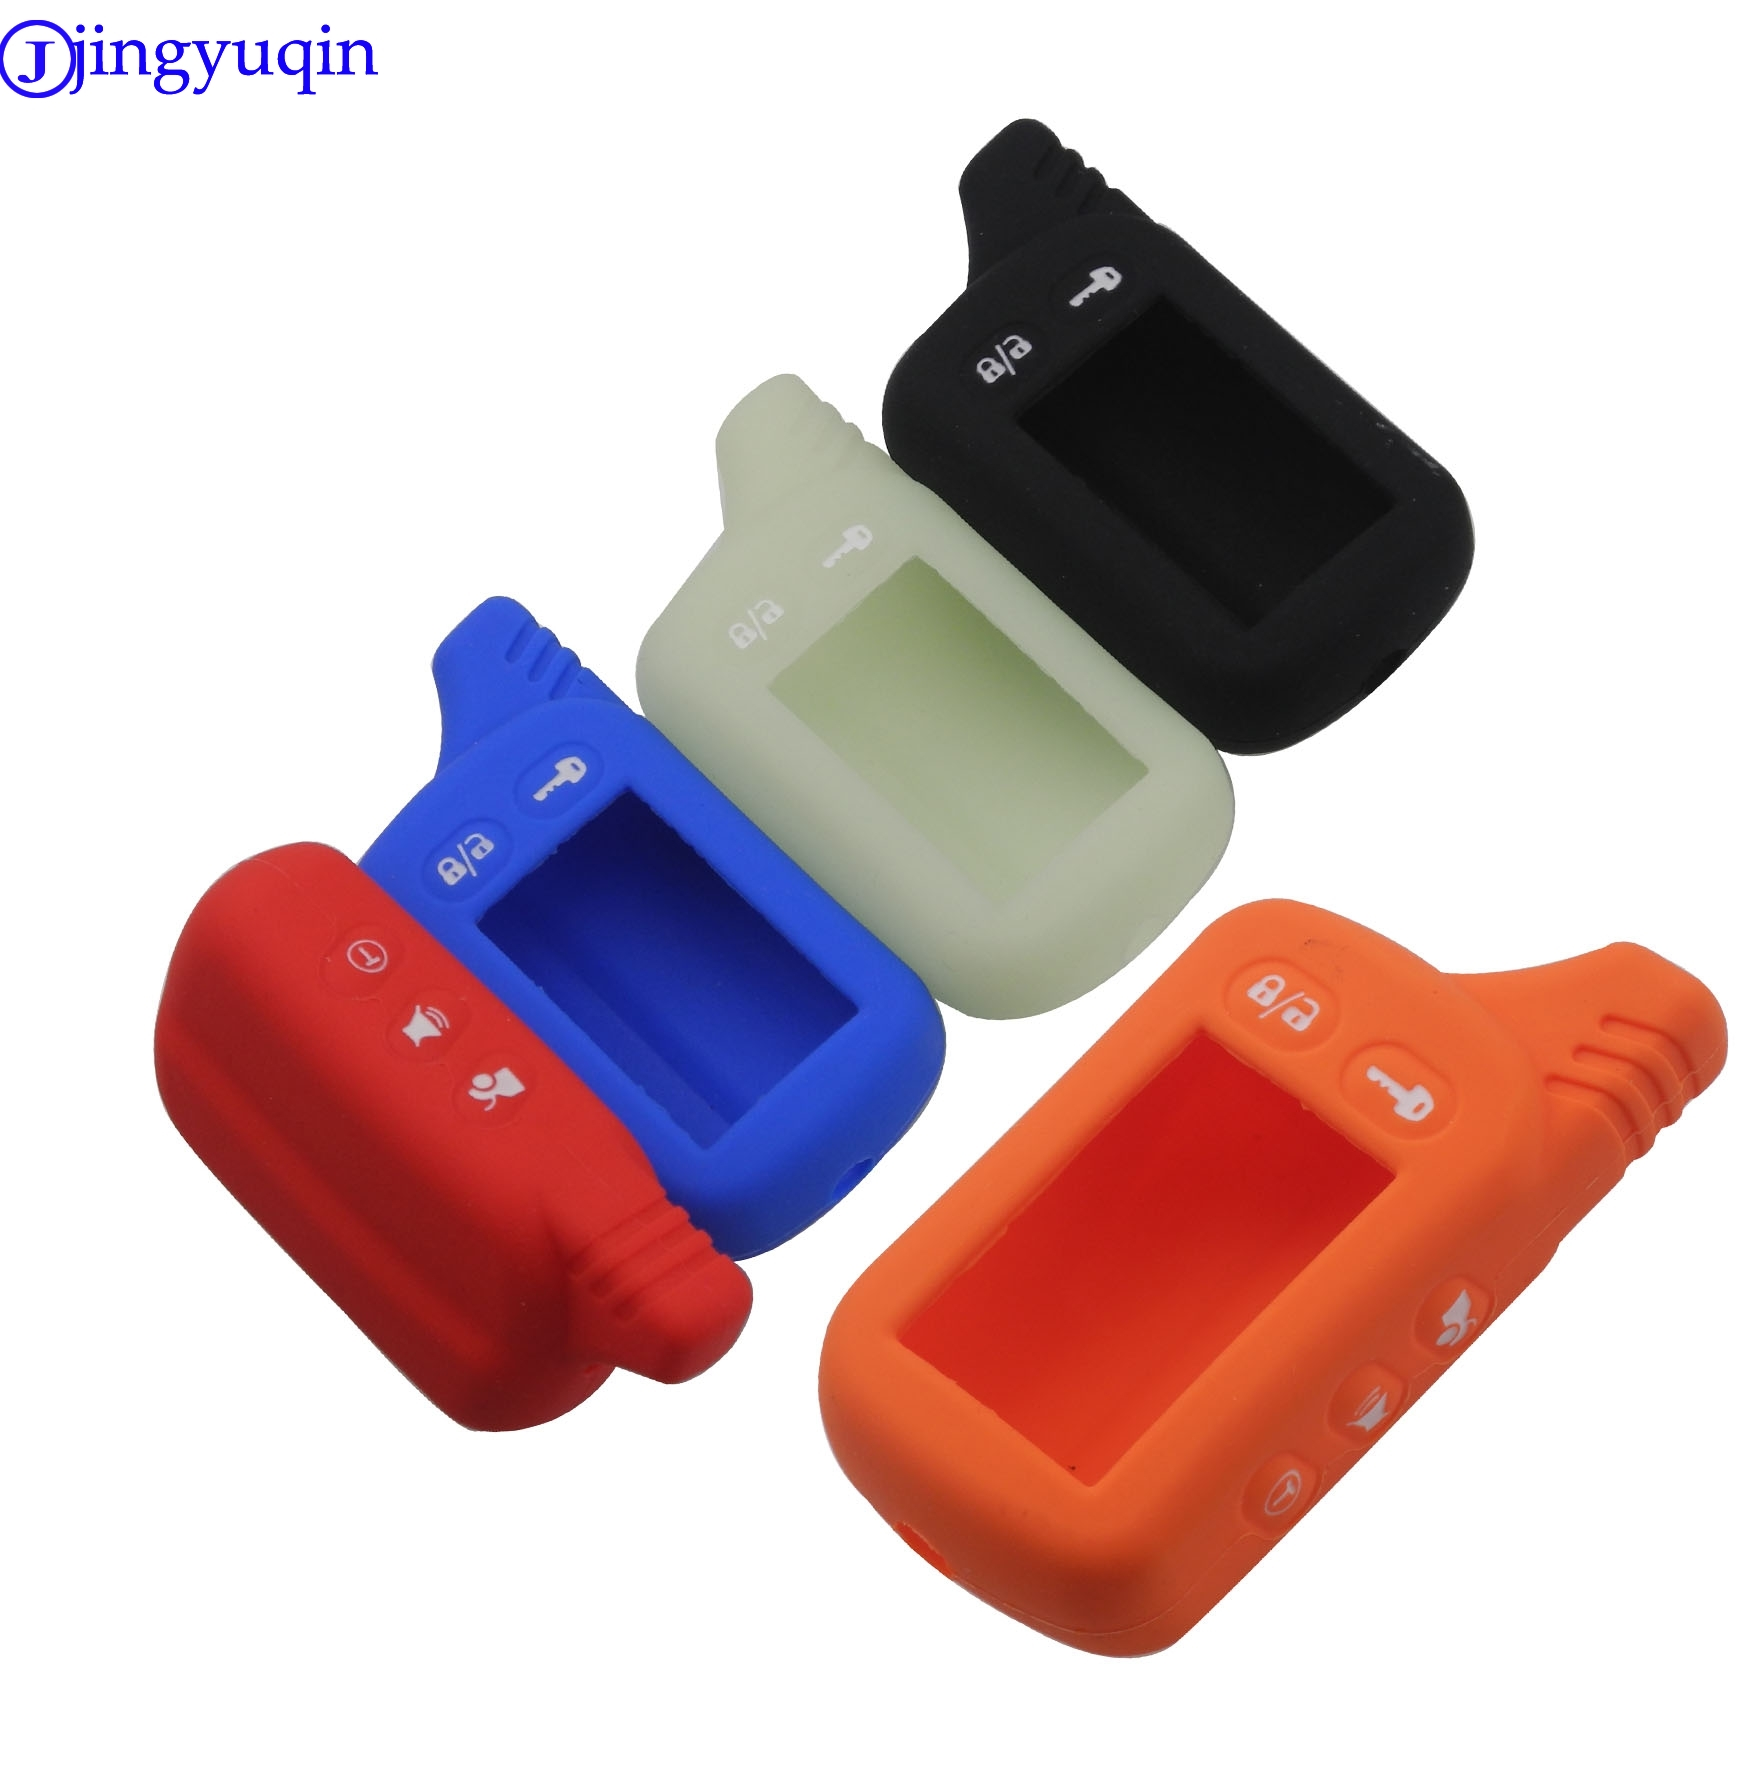 Jingyuqin For Tomahawk TZ9030 TZ9010 SL-950 S-700 Silicone Case KeyChain For Russian 2-way Alarm System Alarm Key Fob Cover